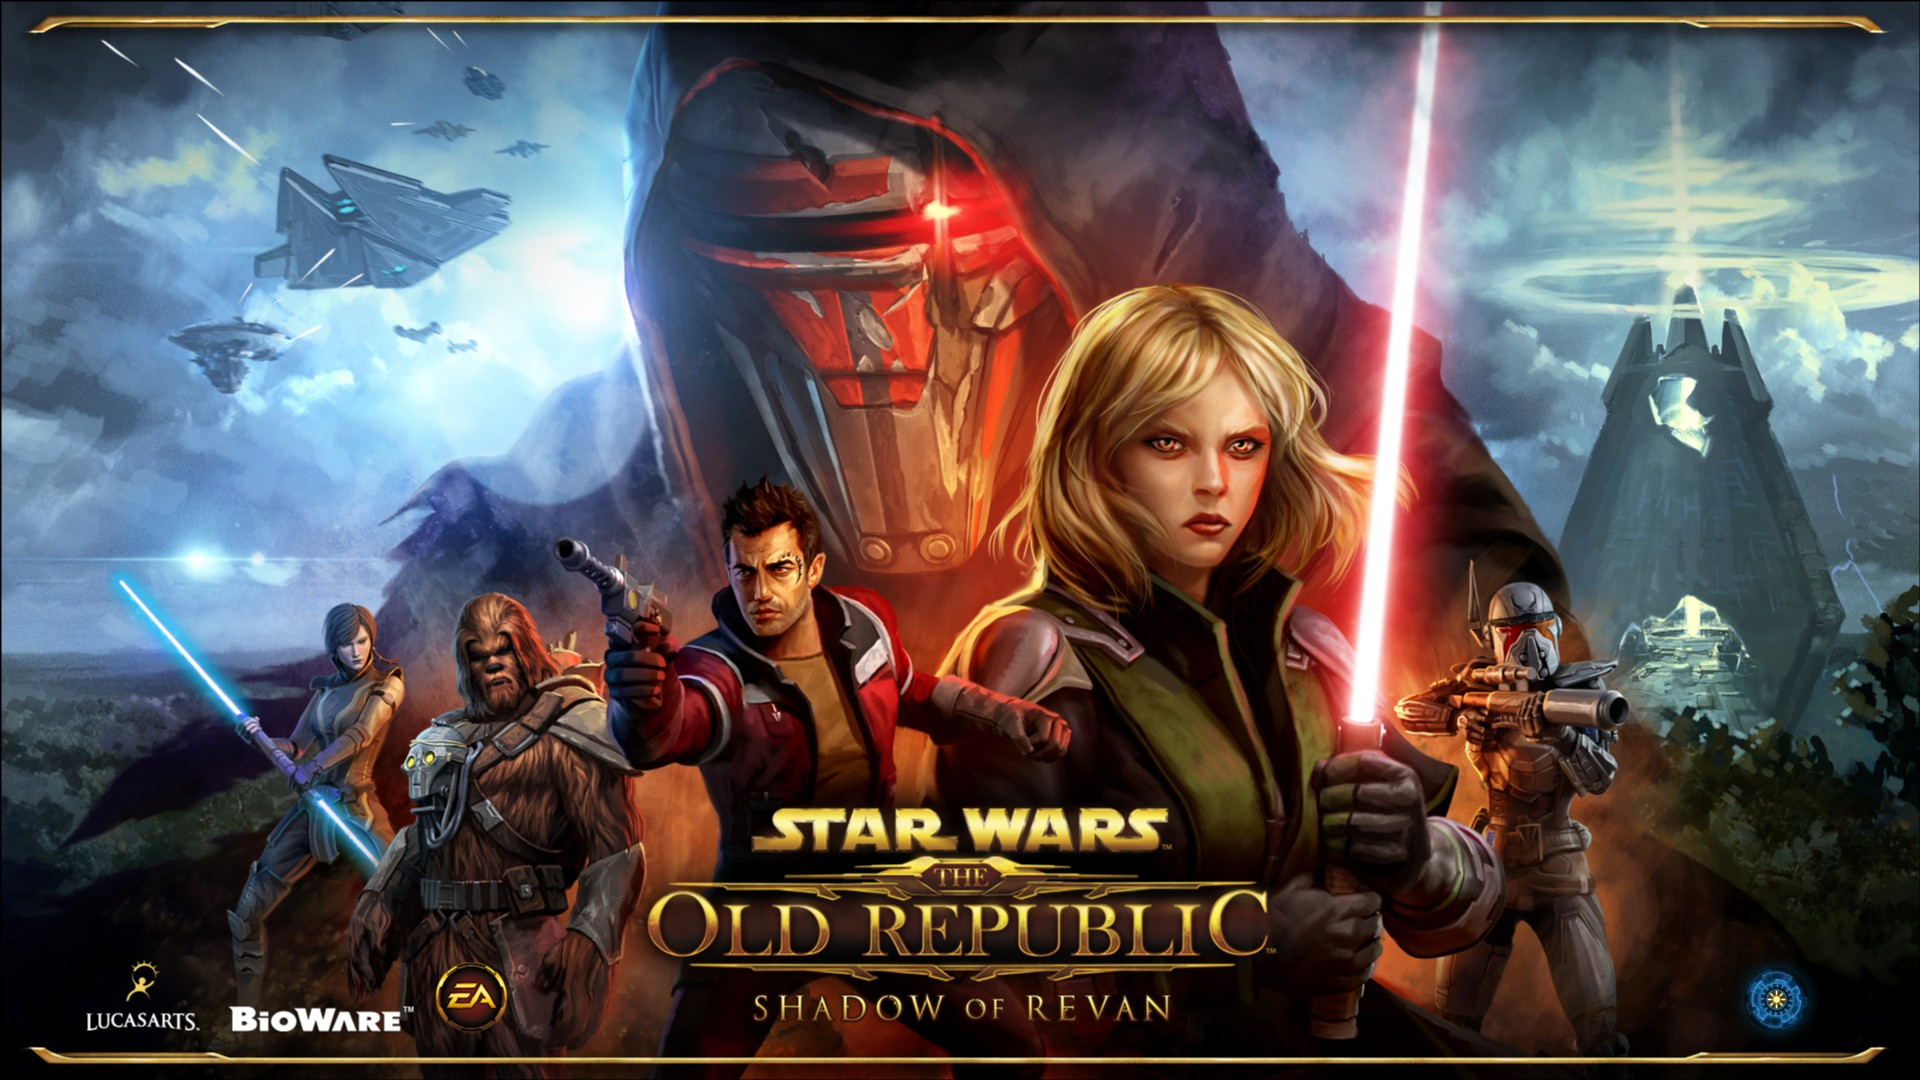 Star Wars: The Old Republic Wallpapers, Pictures, Images - photo#23